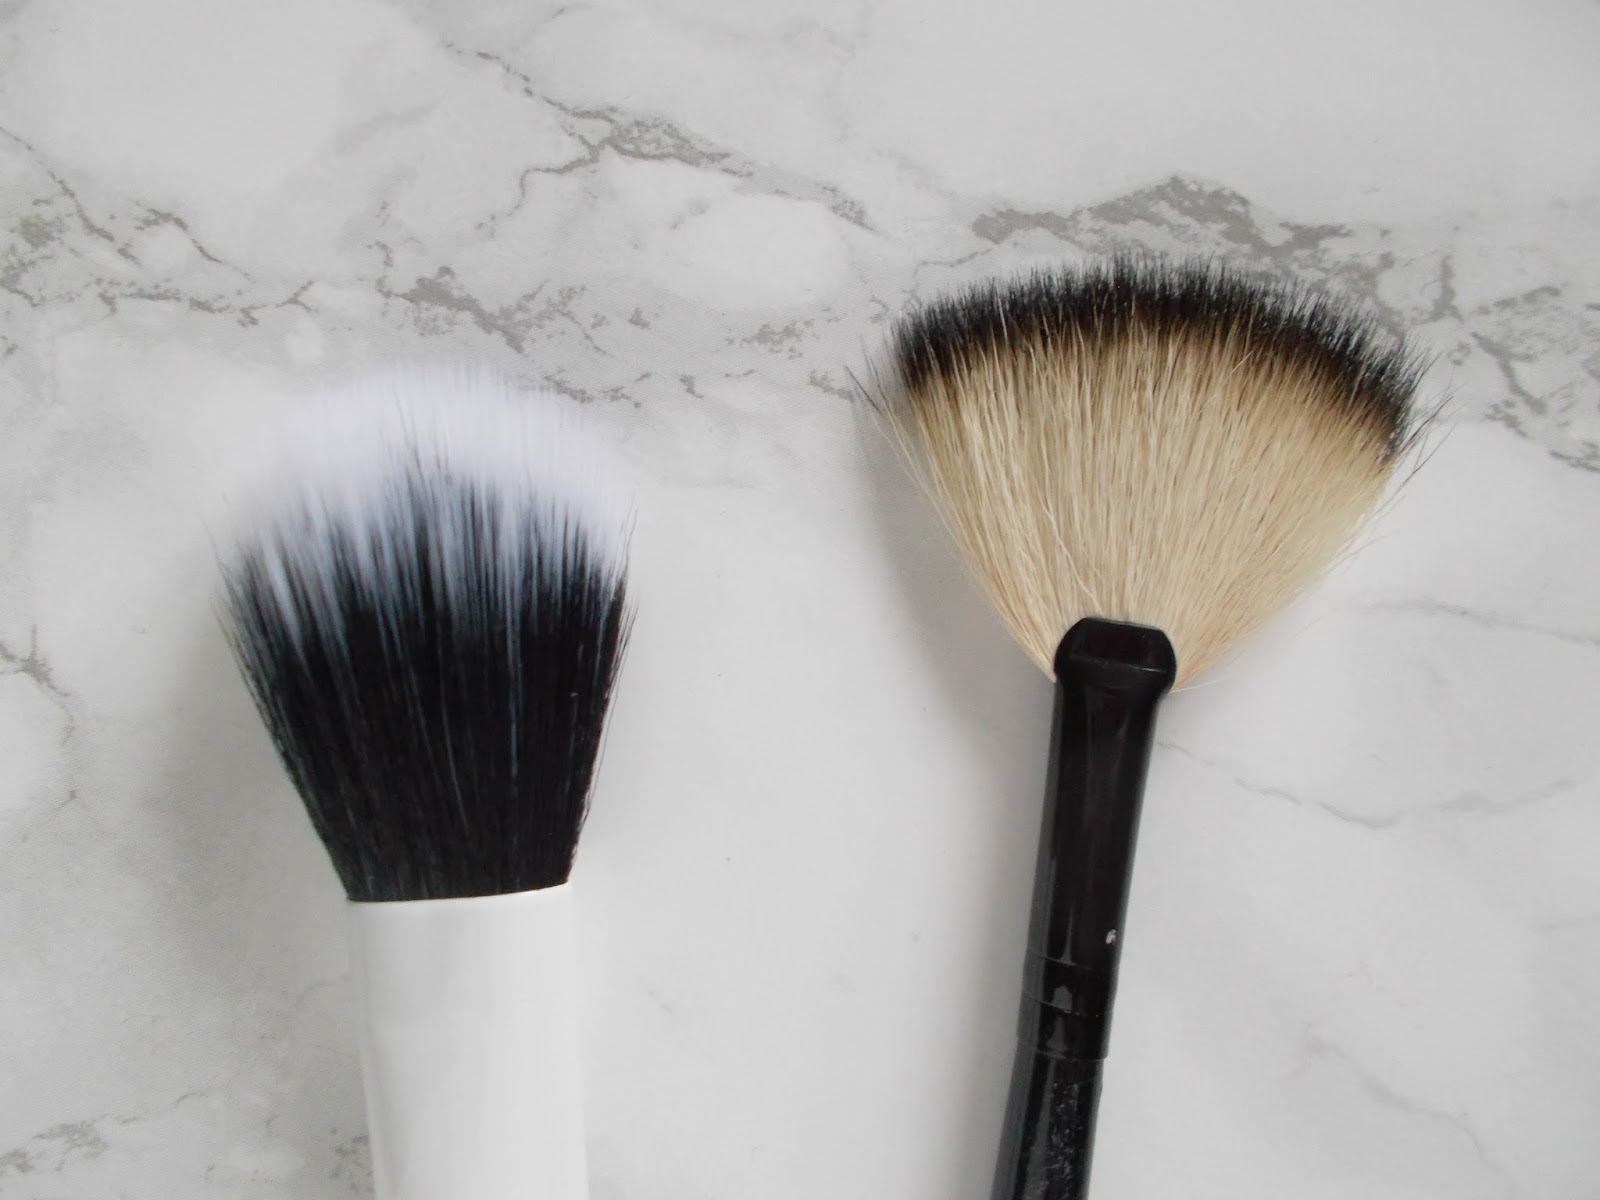 real techniques duo fibre face brush morphe badger deluxe